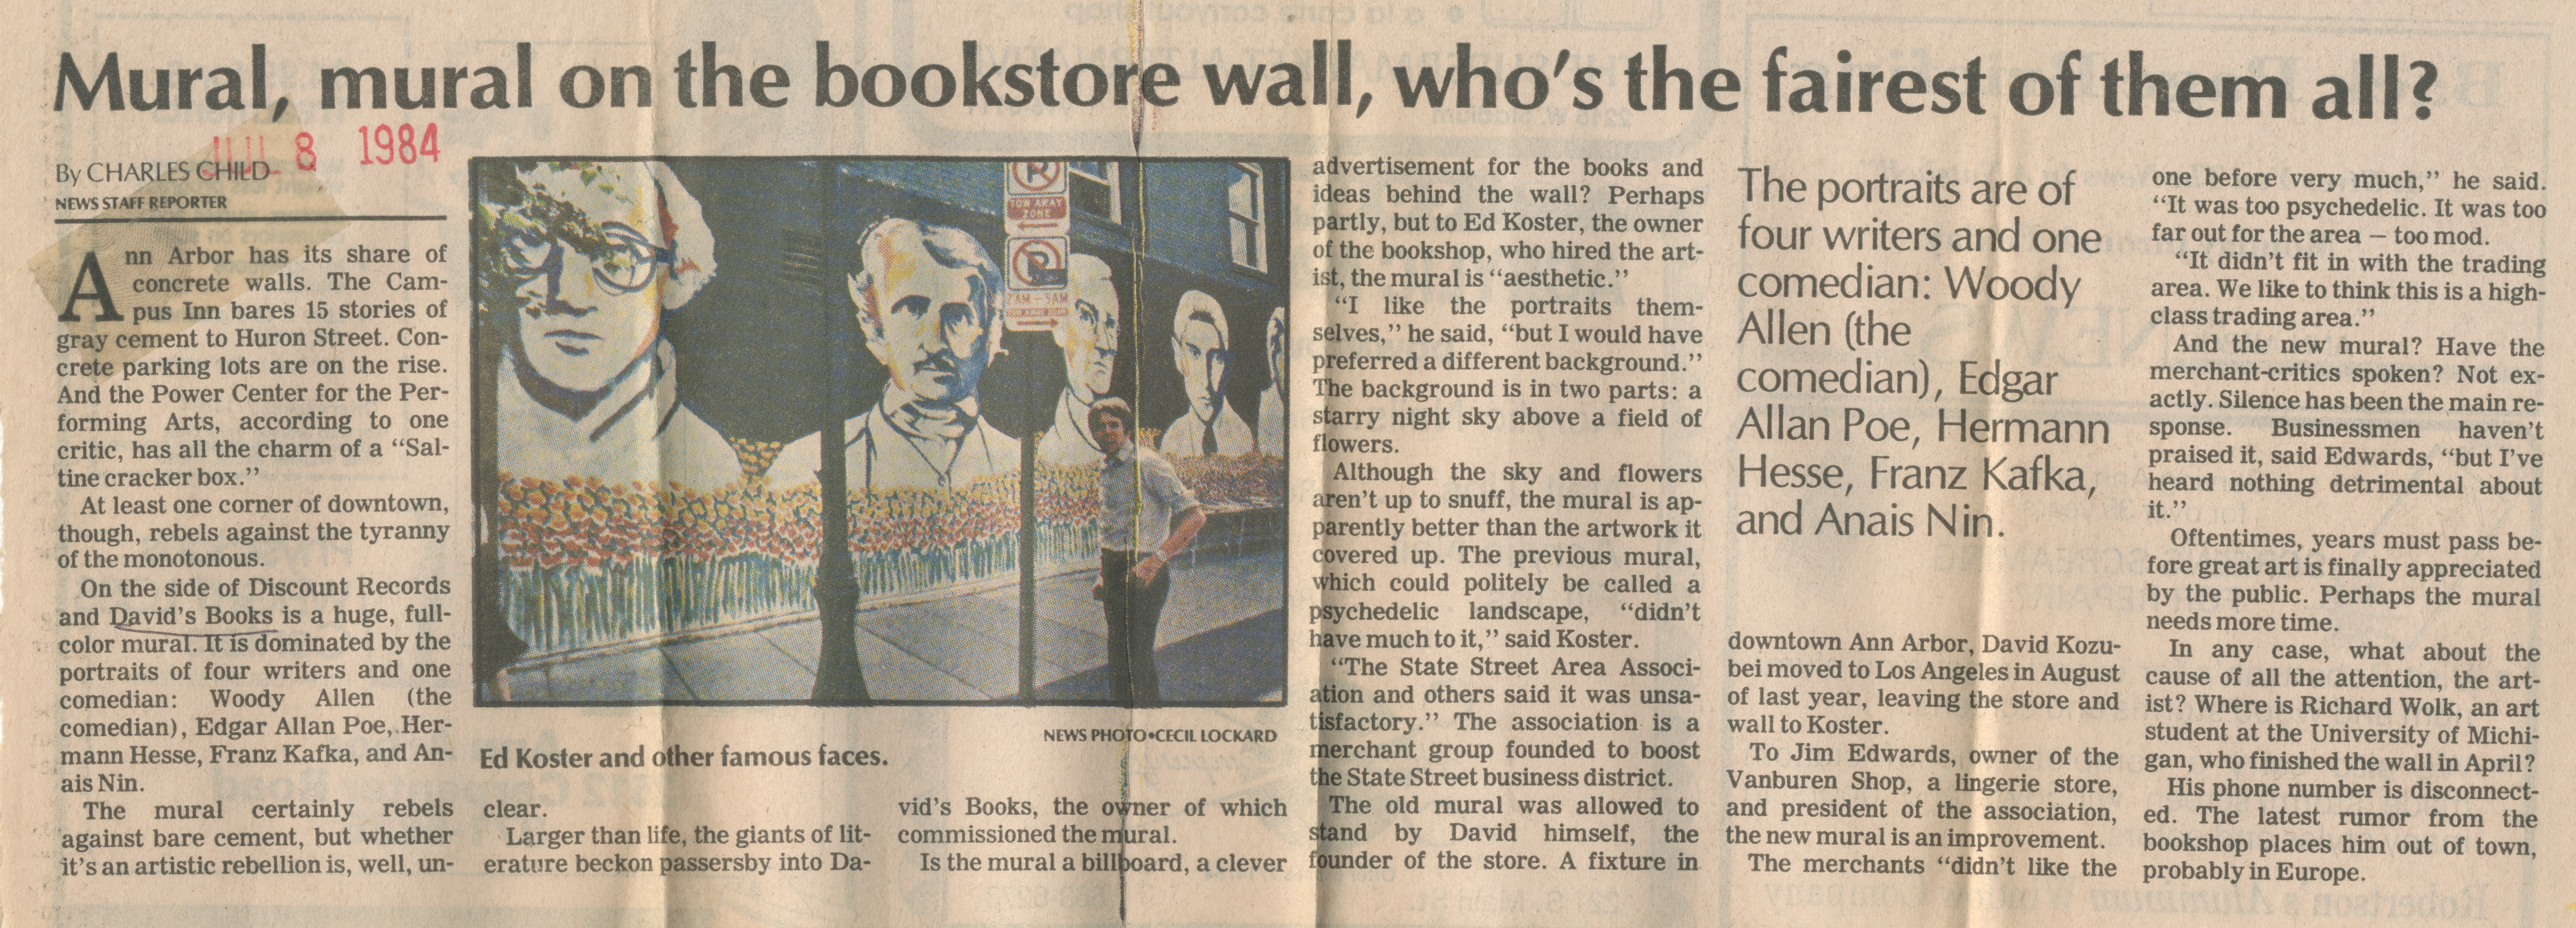 Mural, mural on the bookstore wall, who's the fairest of them all? image